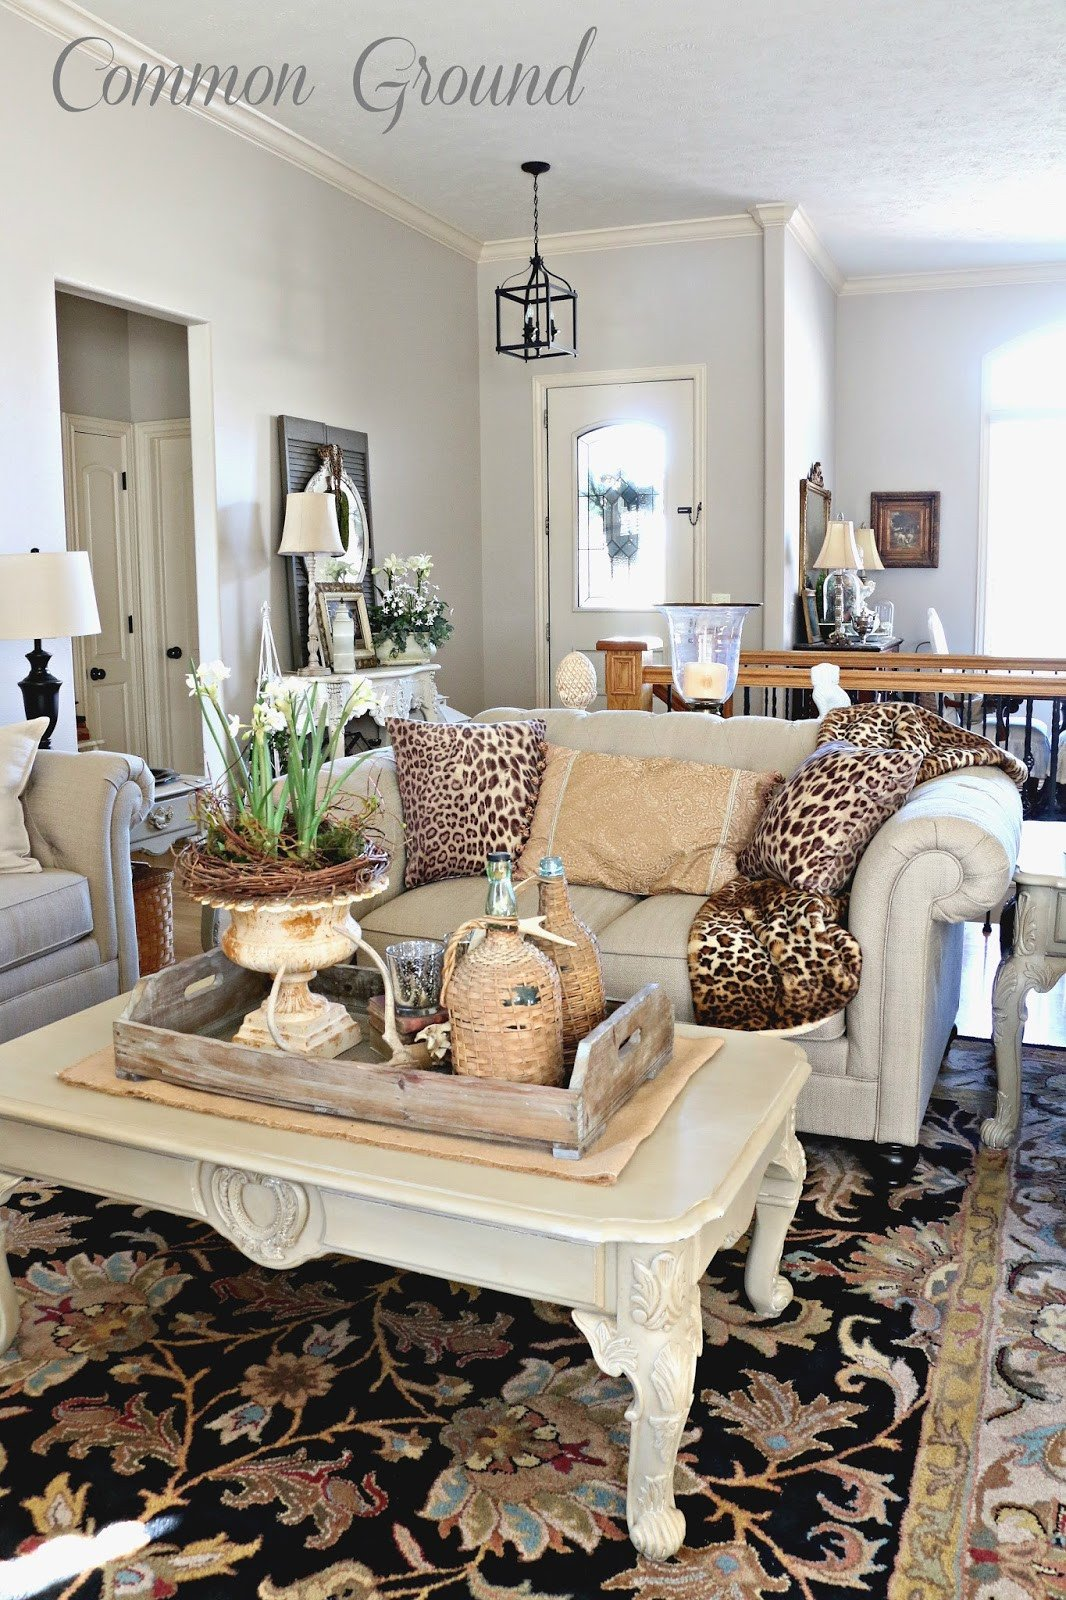 Leopard Decor for Living Room Mon Ground the Living Room and Leopard Print Pillows